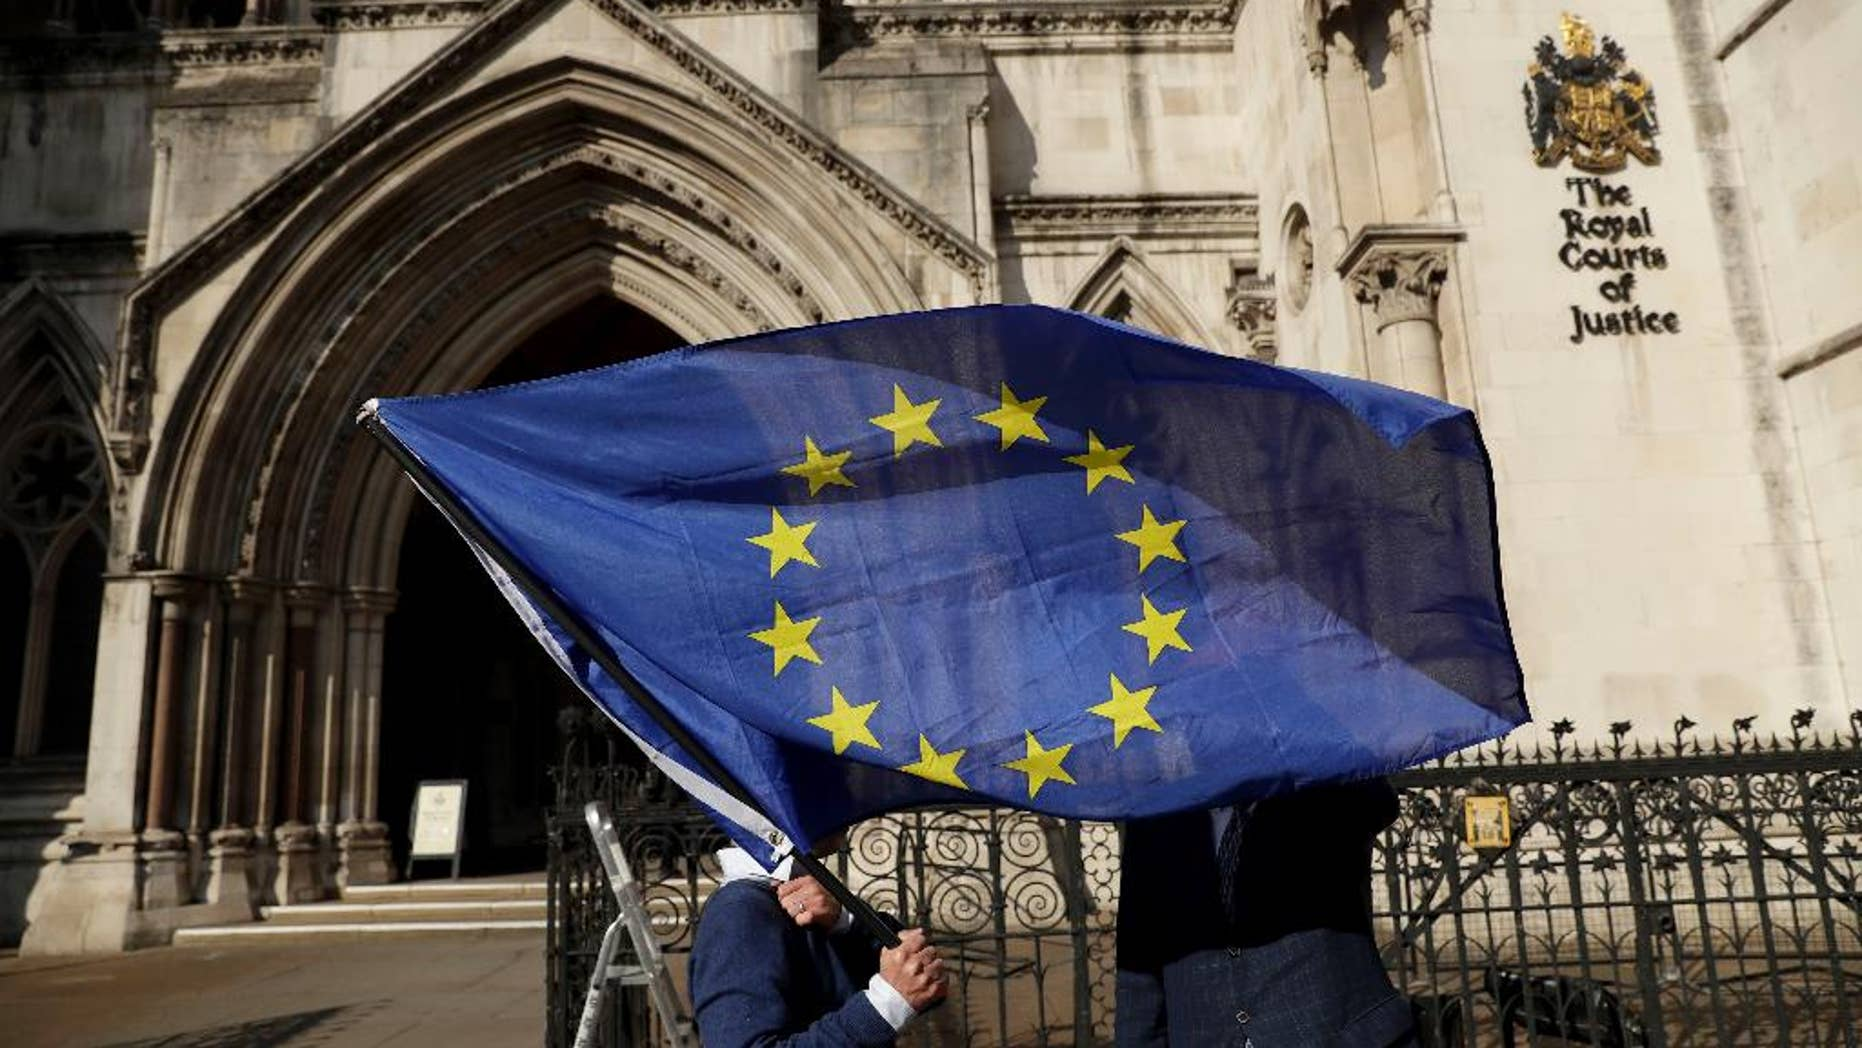 Pro-EU membership supporter Phil Jones holds an EU flag outside the High Court, on the first day of the lawsuit of Gina Miller, a founder of investment management group SCM Private, in London, Thursday, Oct. 13, 2016. Rival protesters have gathered outside the High Court in London, where lawyers are battling over whether the government has the power to trigger Britain's exit from the European Union without approval from Parliament. (AP Photo/Matt Dunham)